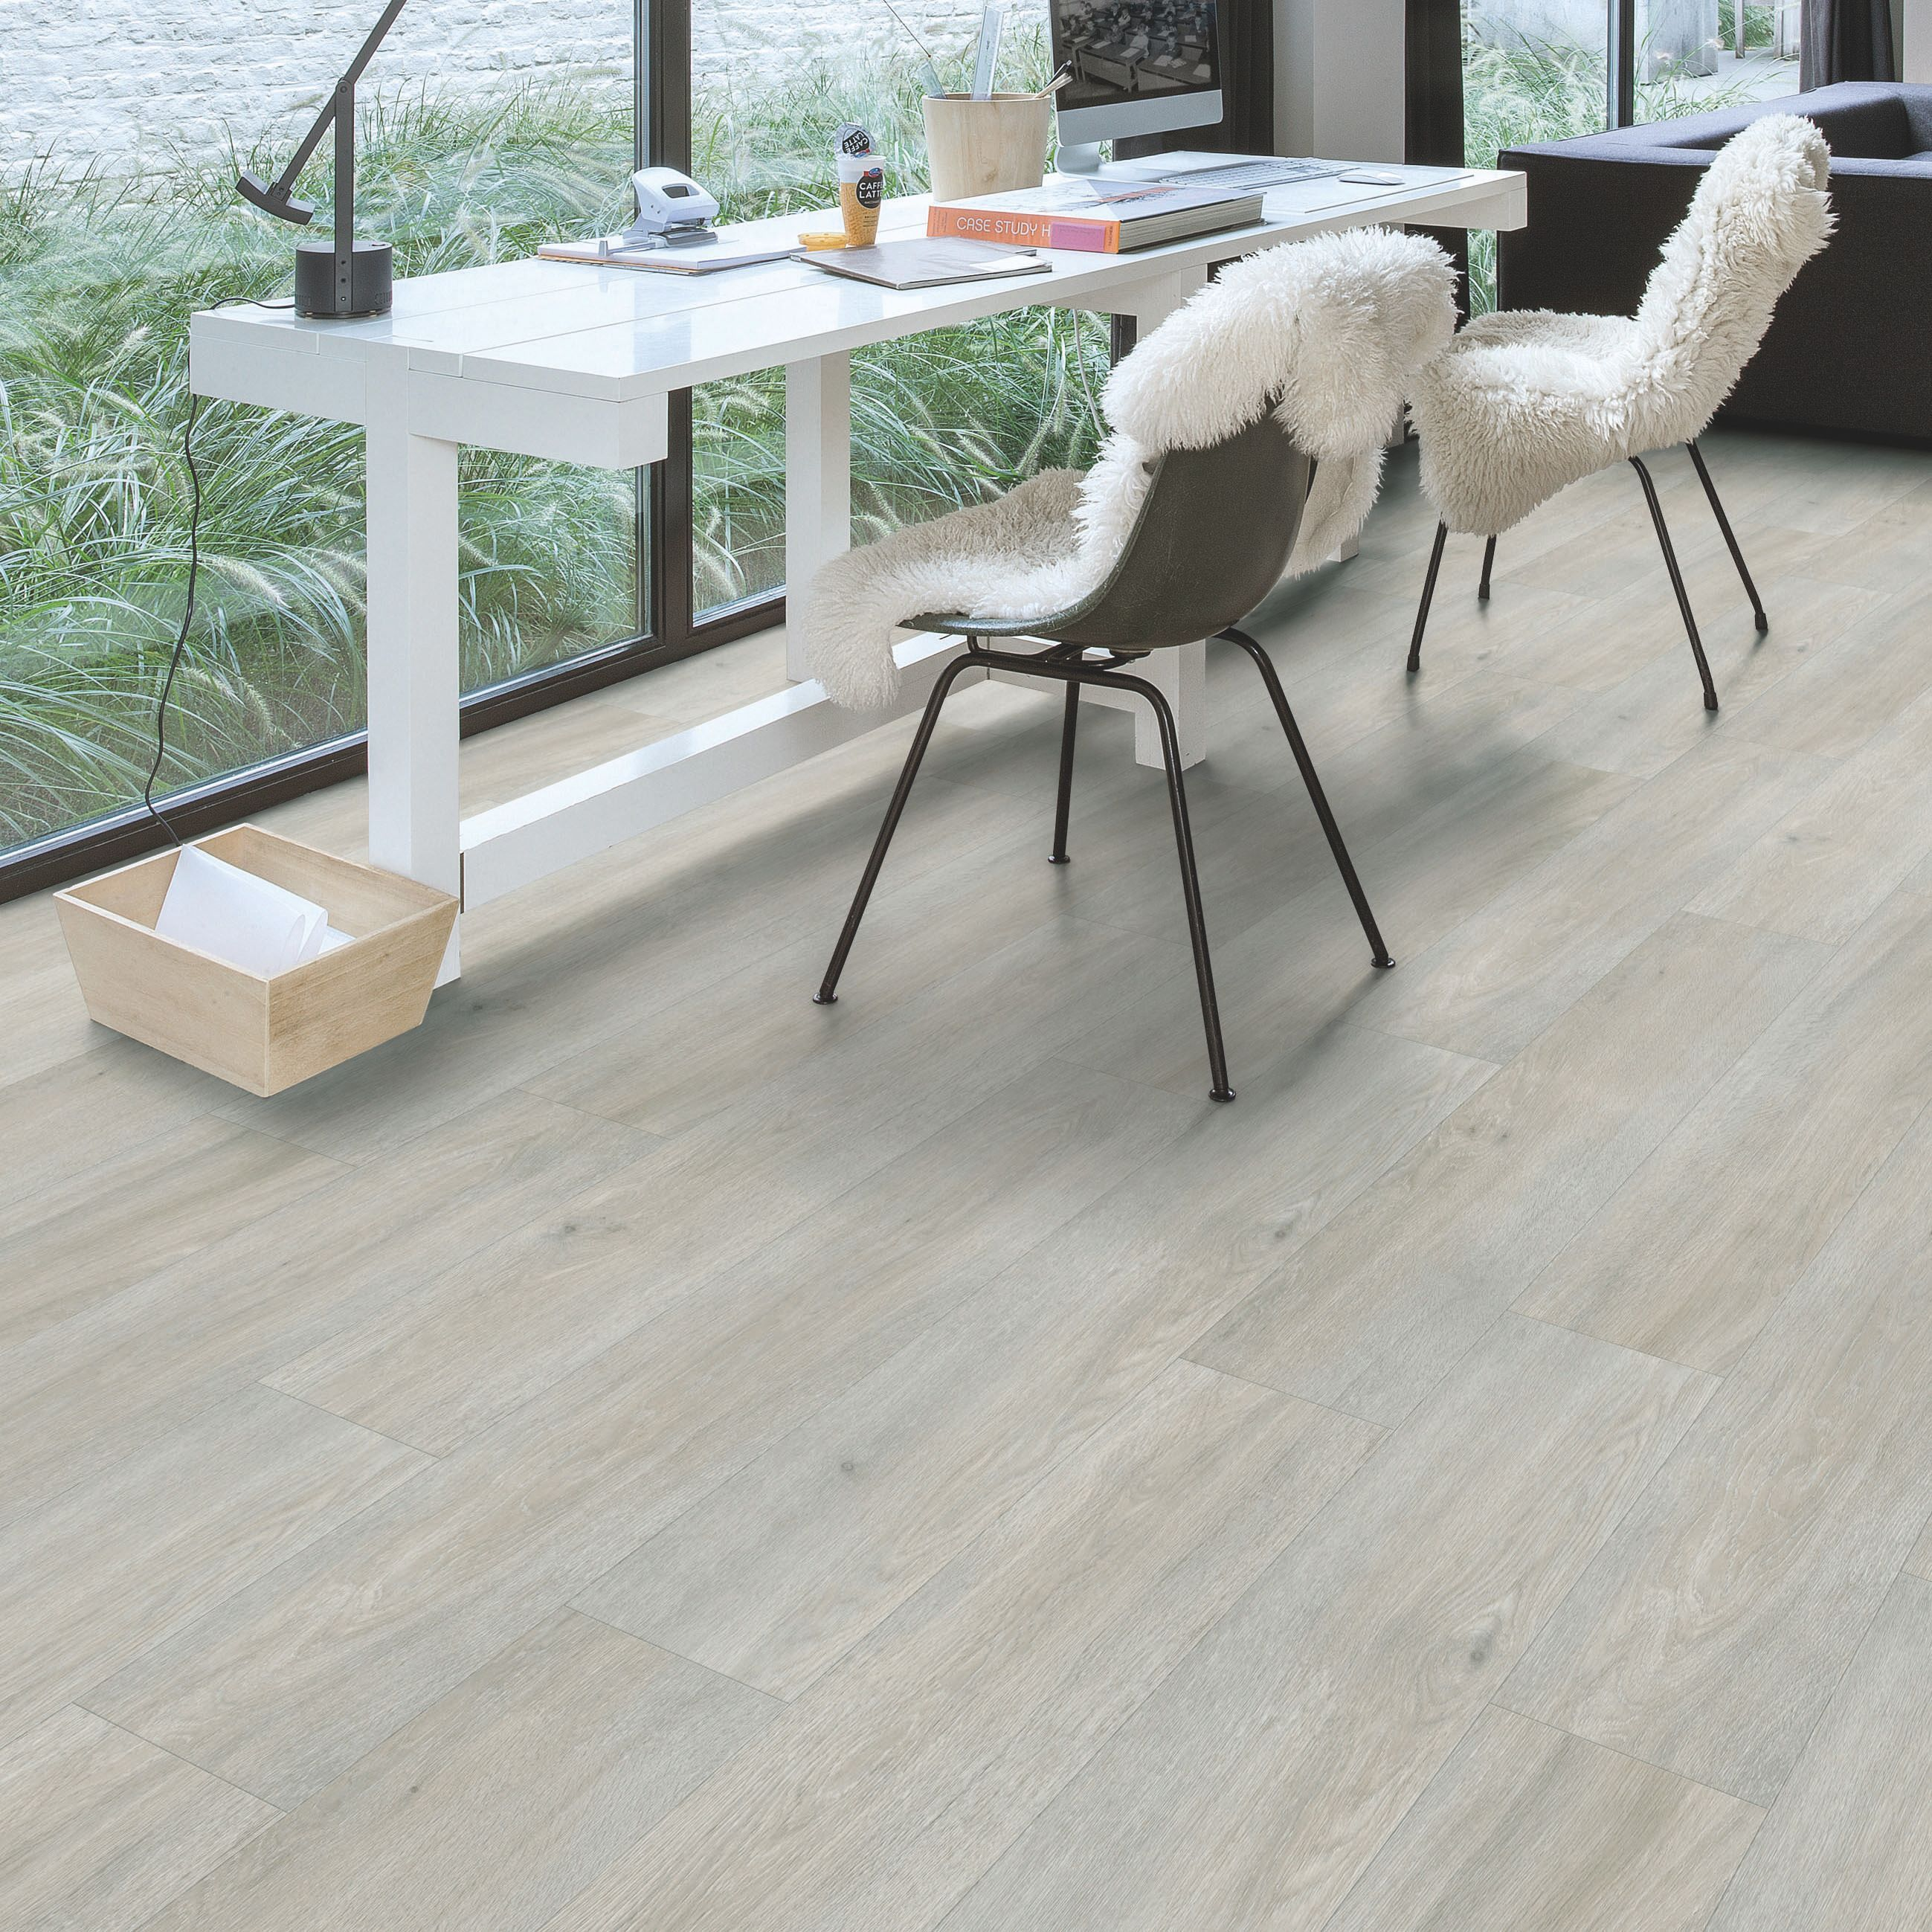 Paso light grey oak effect waterproof luxury vinyl flooring tile paso light grey oak effect waterproof luxury vinyl flooring tile 2105 m pack departments doublecrazyfo Gallery